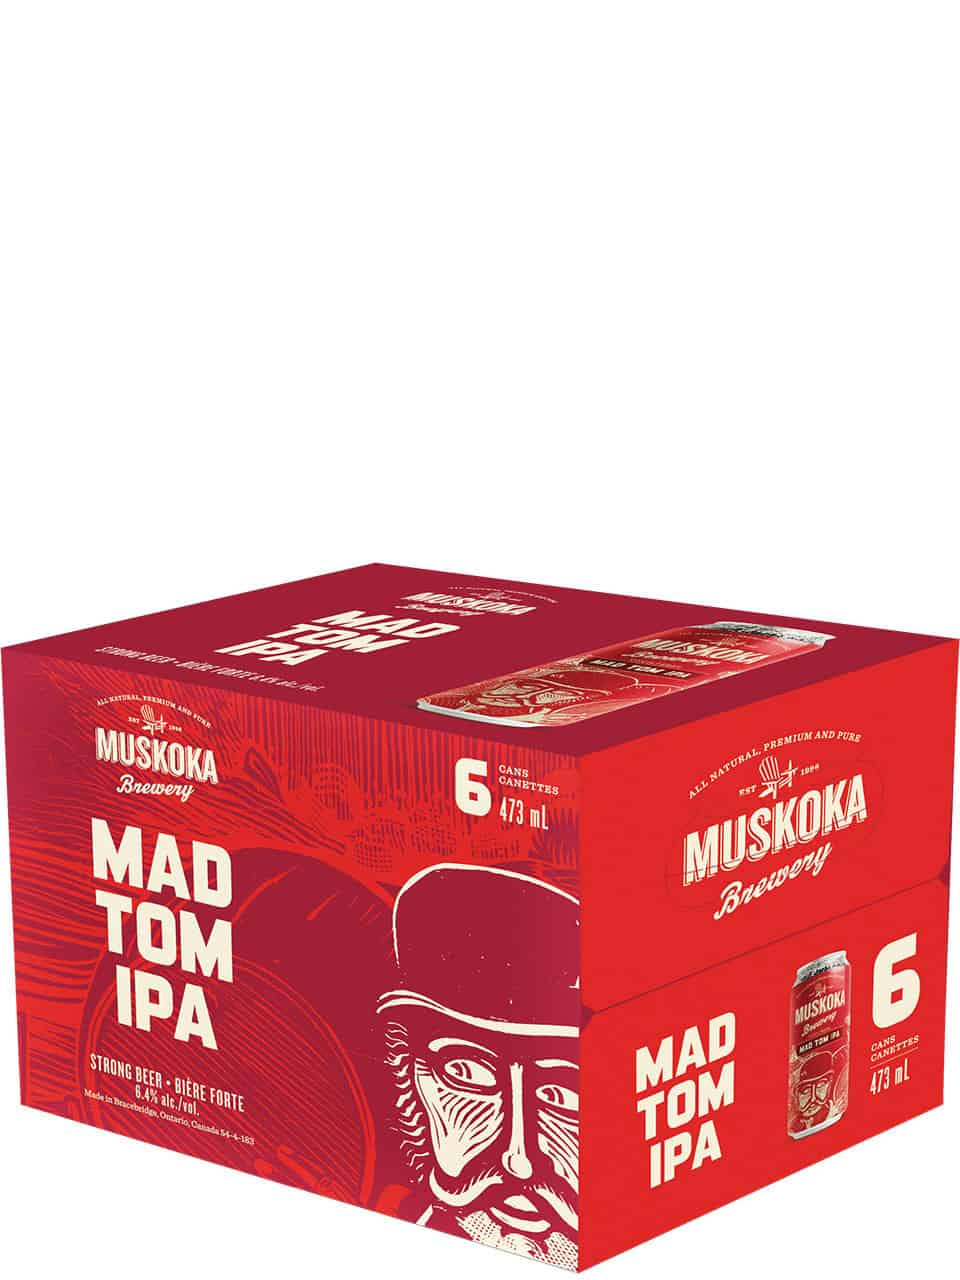 Muskoka Mad Tom IPA 6 Pack Cans